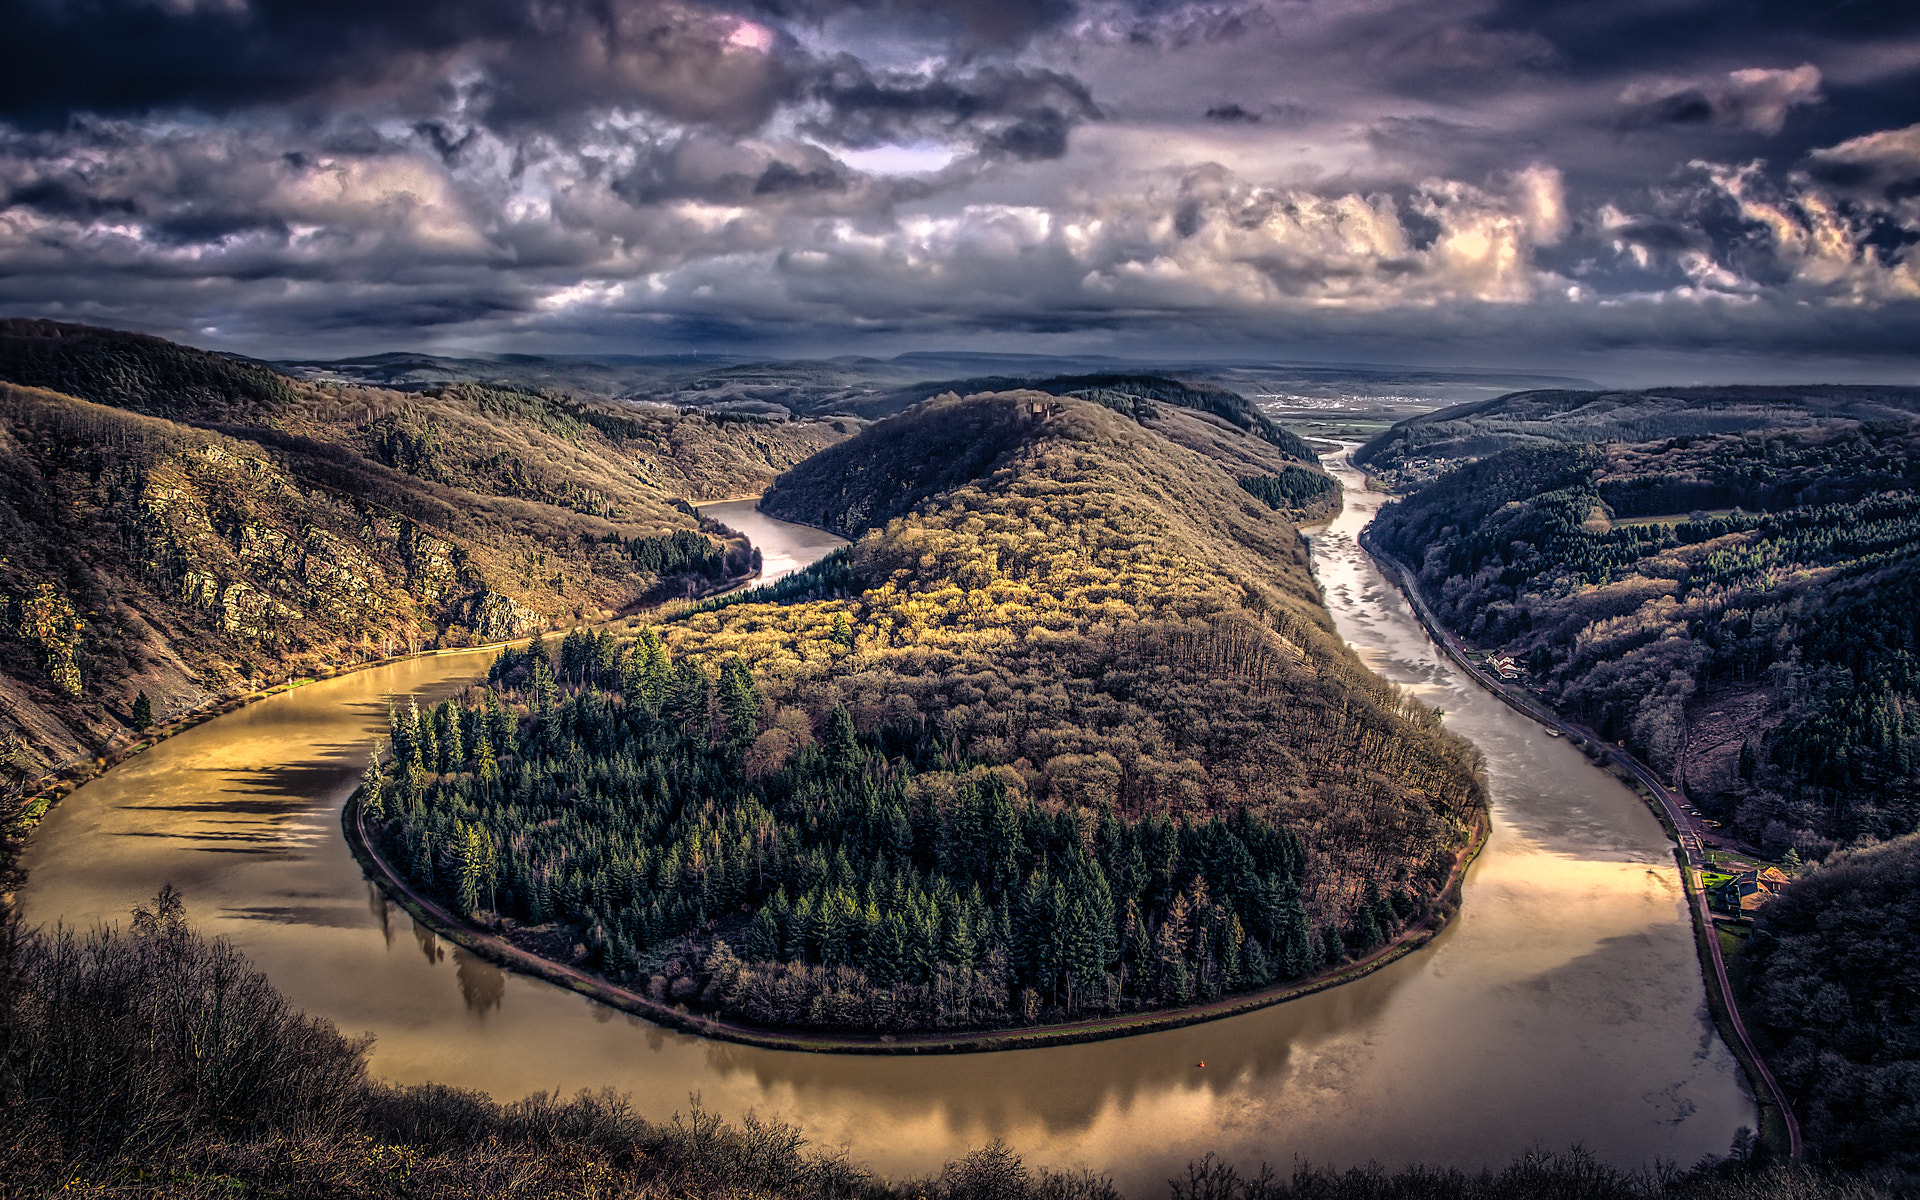 Photograph Endless River  by Johann Kumbeiz on 500px